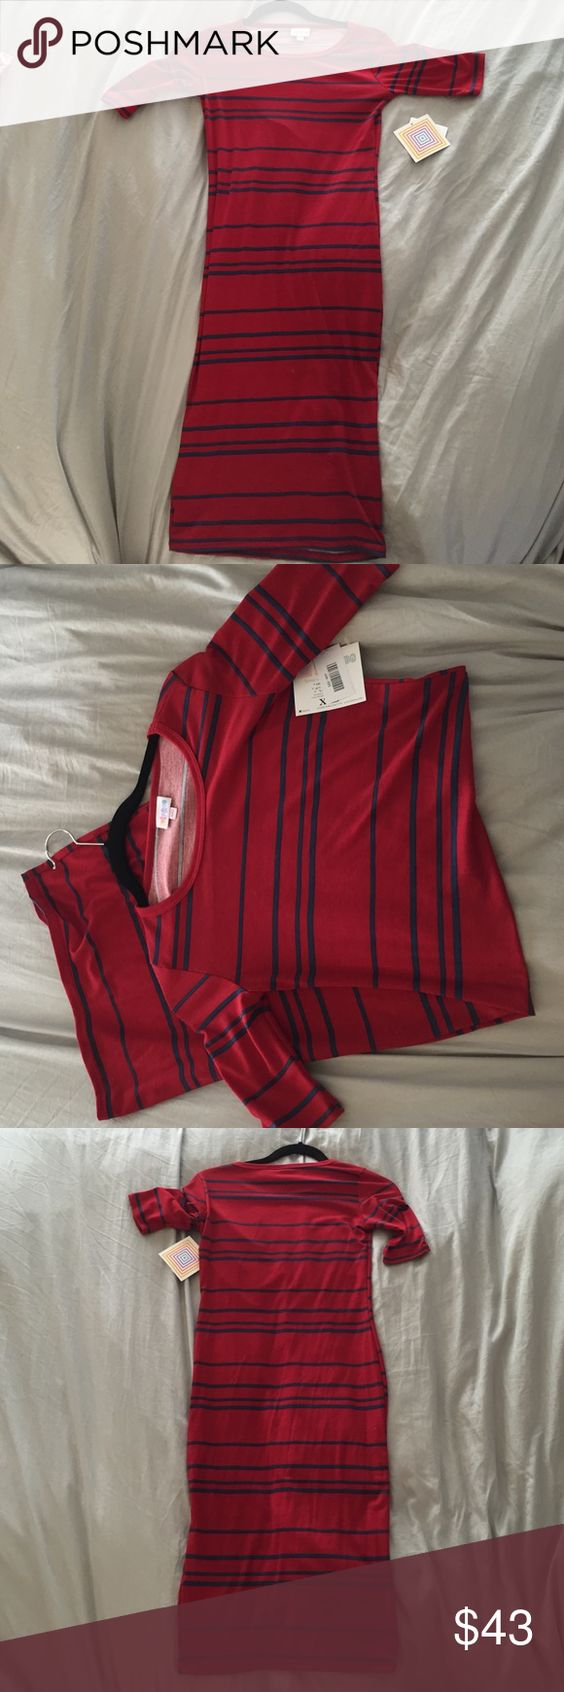 Lularoe red and blue striped dress New with tags Julia style dress in xxs. Last picture is what it looks like on a mannequin when I purchased it. LuLaRoe Dresses